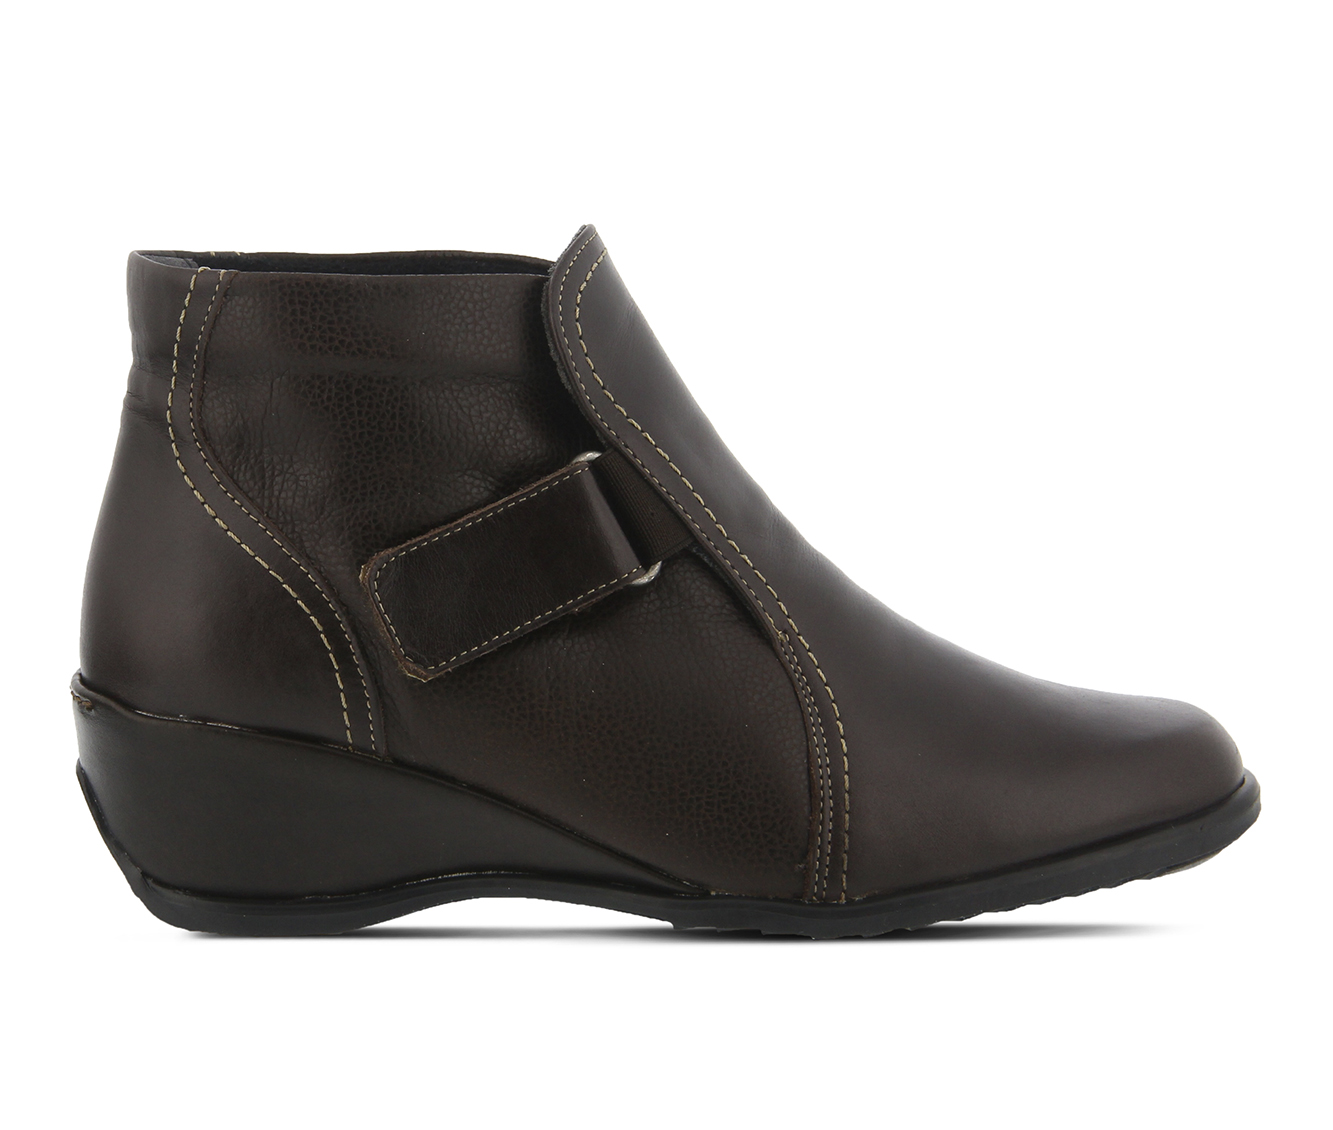 SPRING STEP Andrea Women's Boots (Brown Leather)